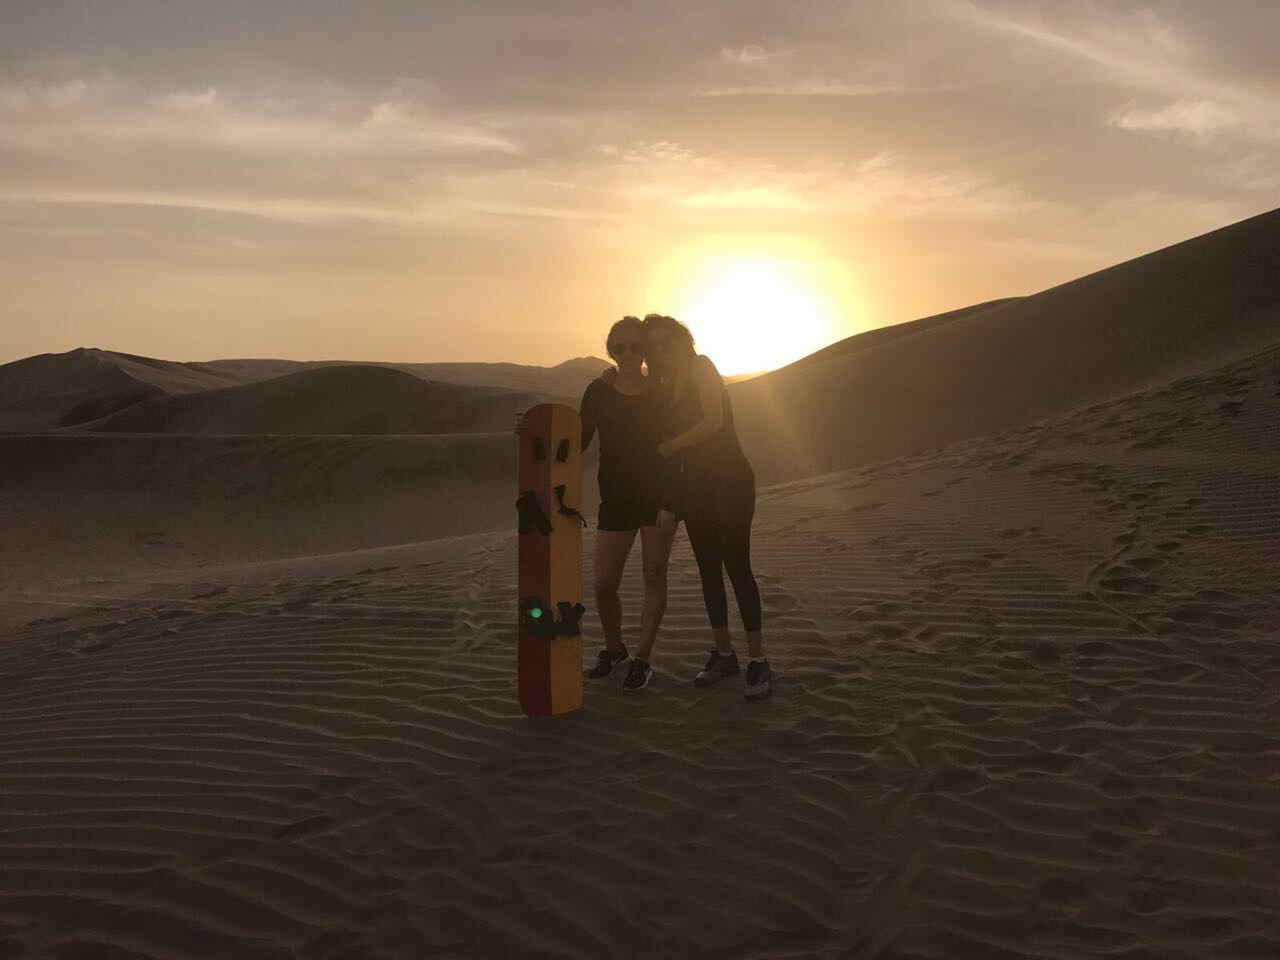 Sand boarding in Huacachina Oasis in Ica